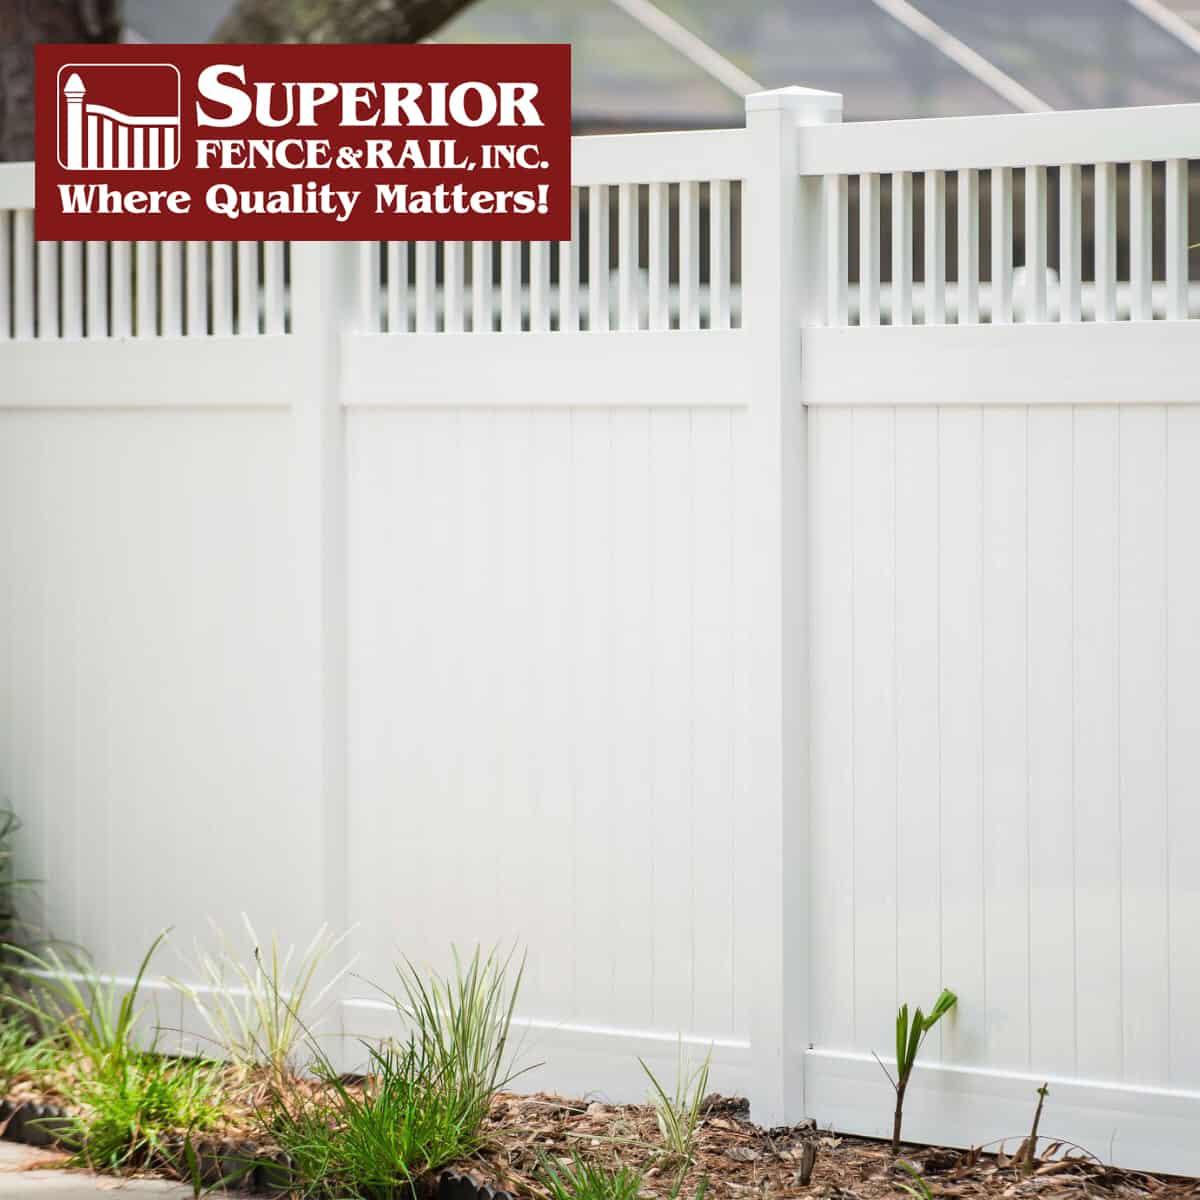 Waxhaw fence company contractor